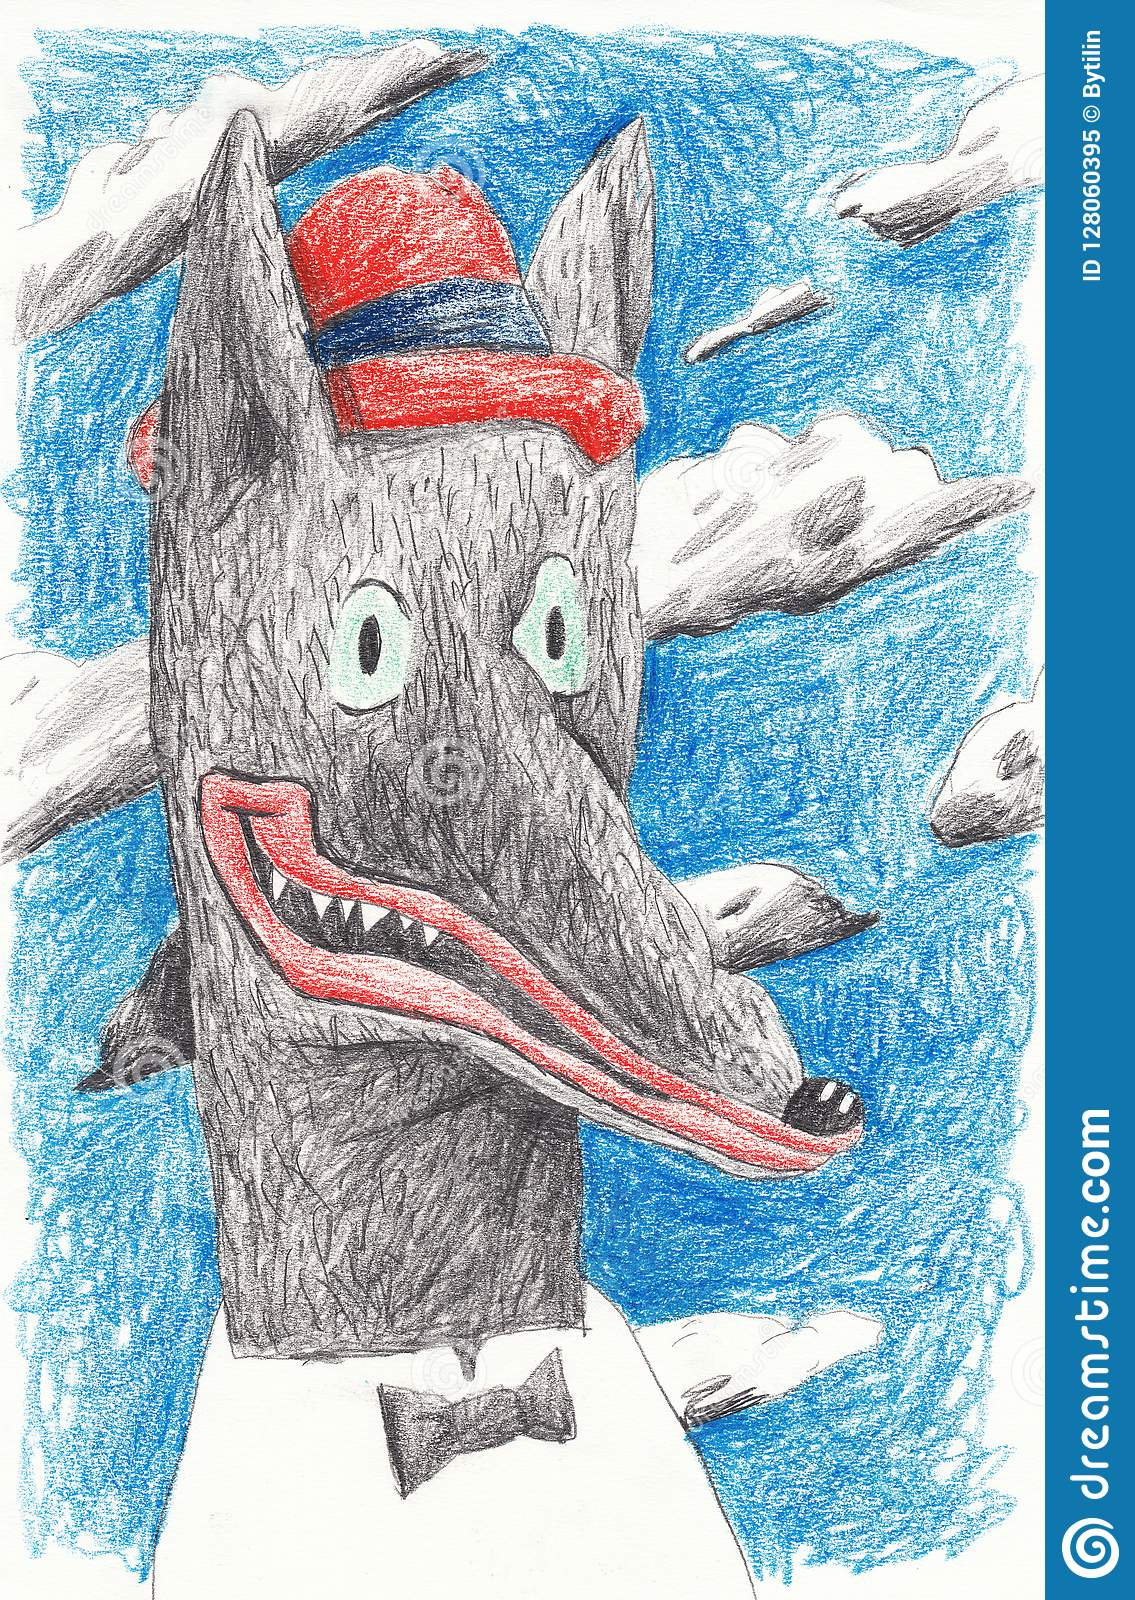 Wolf actor in a red hat. Illustration for editions and posters in the interior.